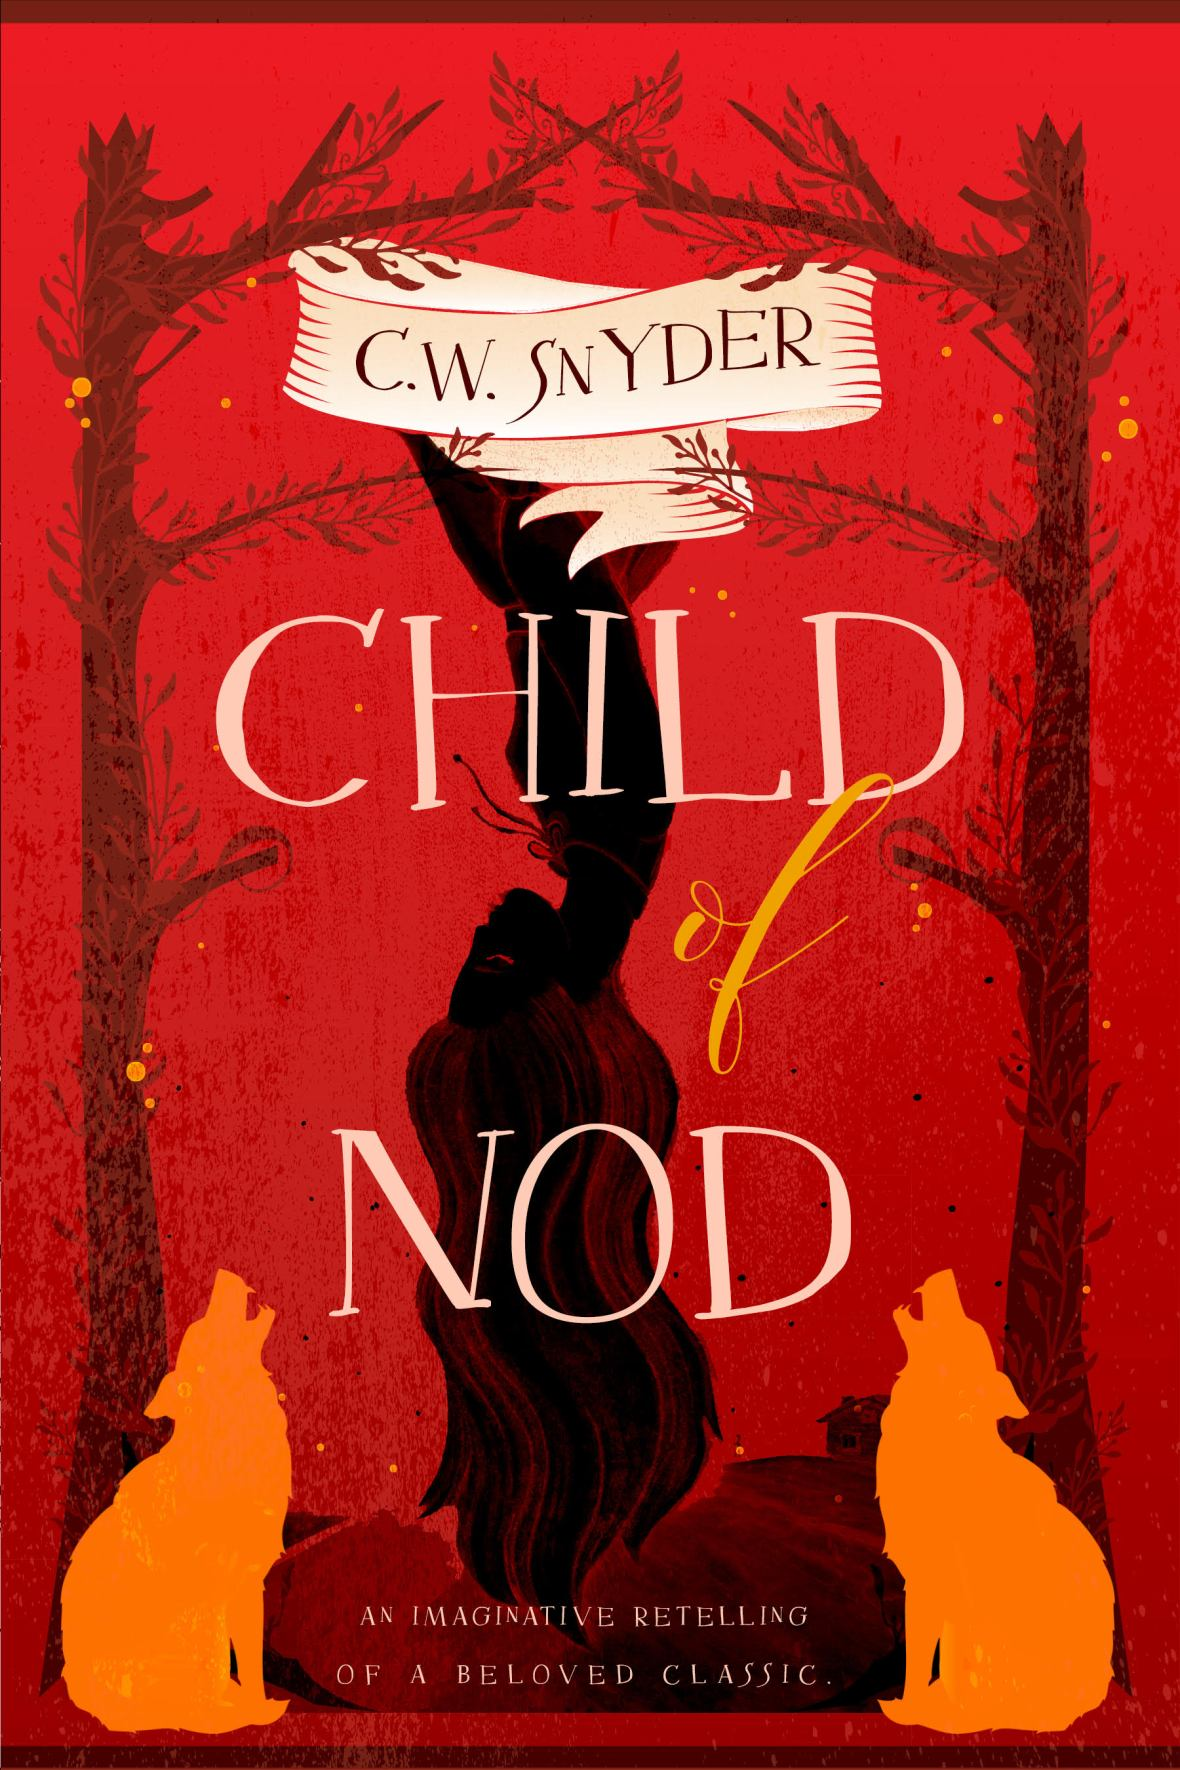 Child of Nod by C.W. Snyder